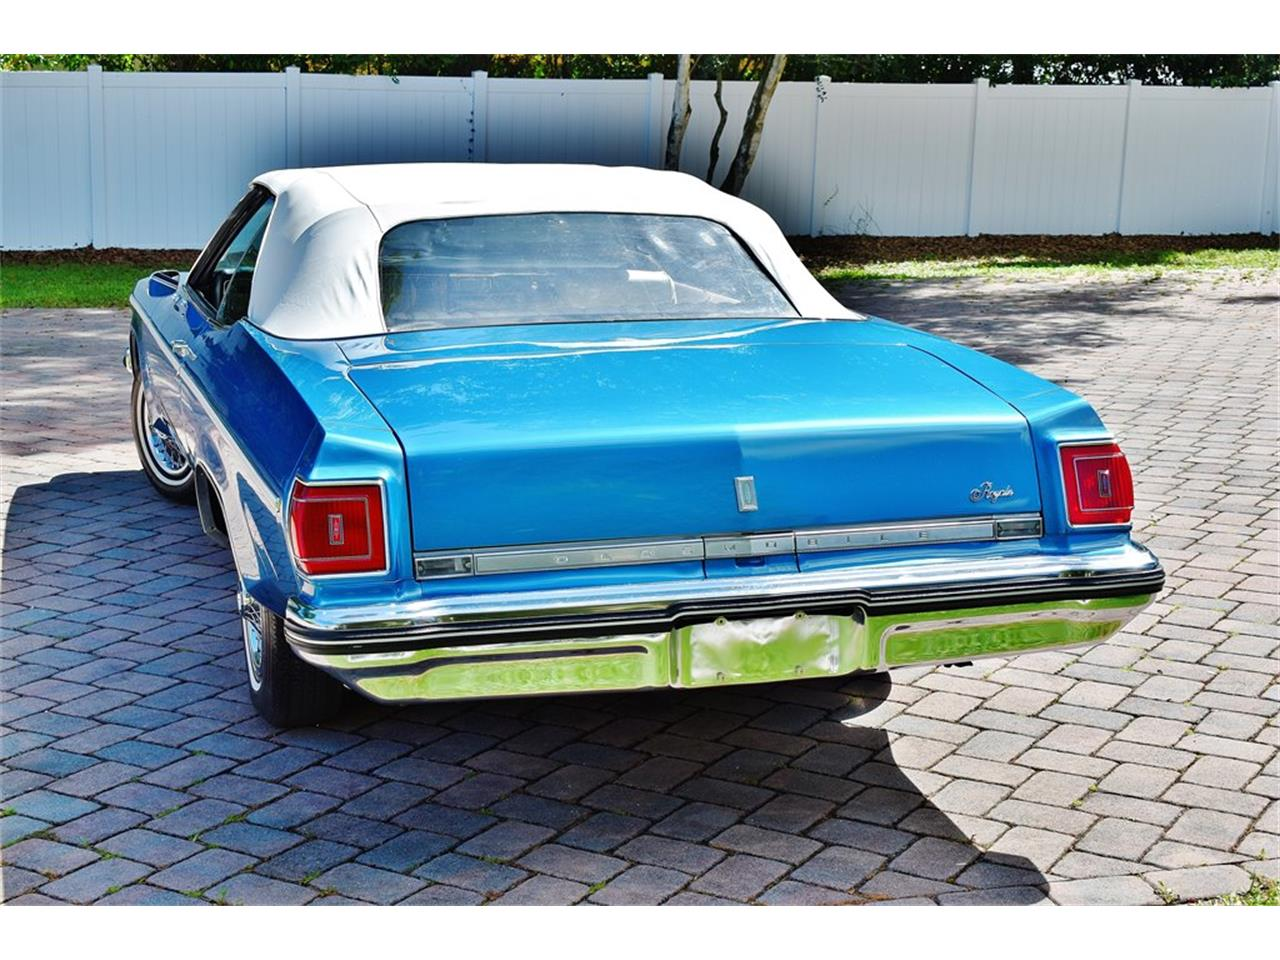 Large Picture of '75 Delta 88 located in Florida - $24,900.00 - PKMX